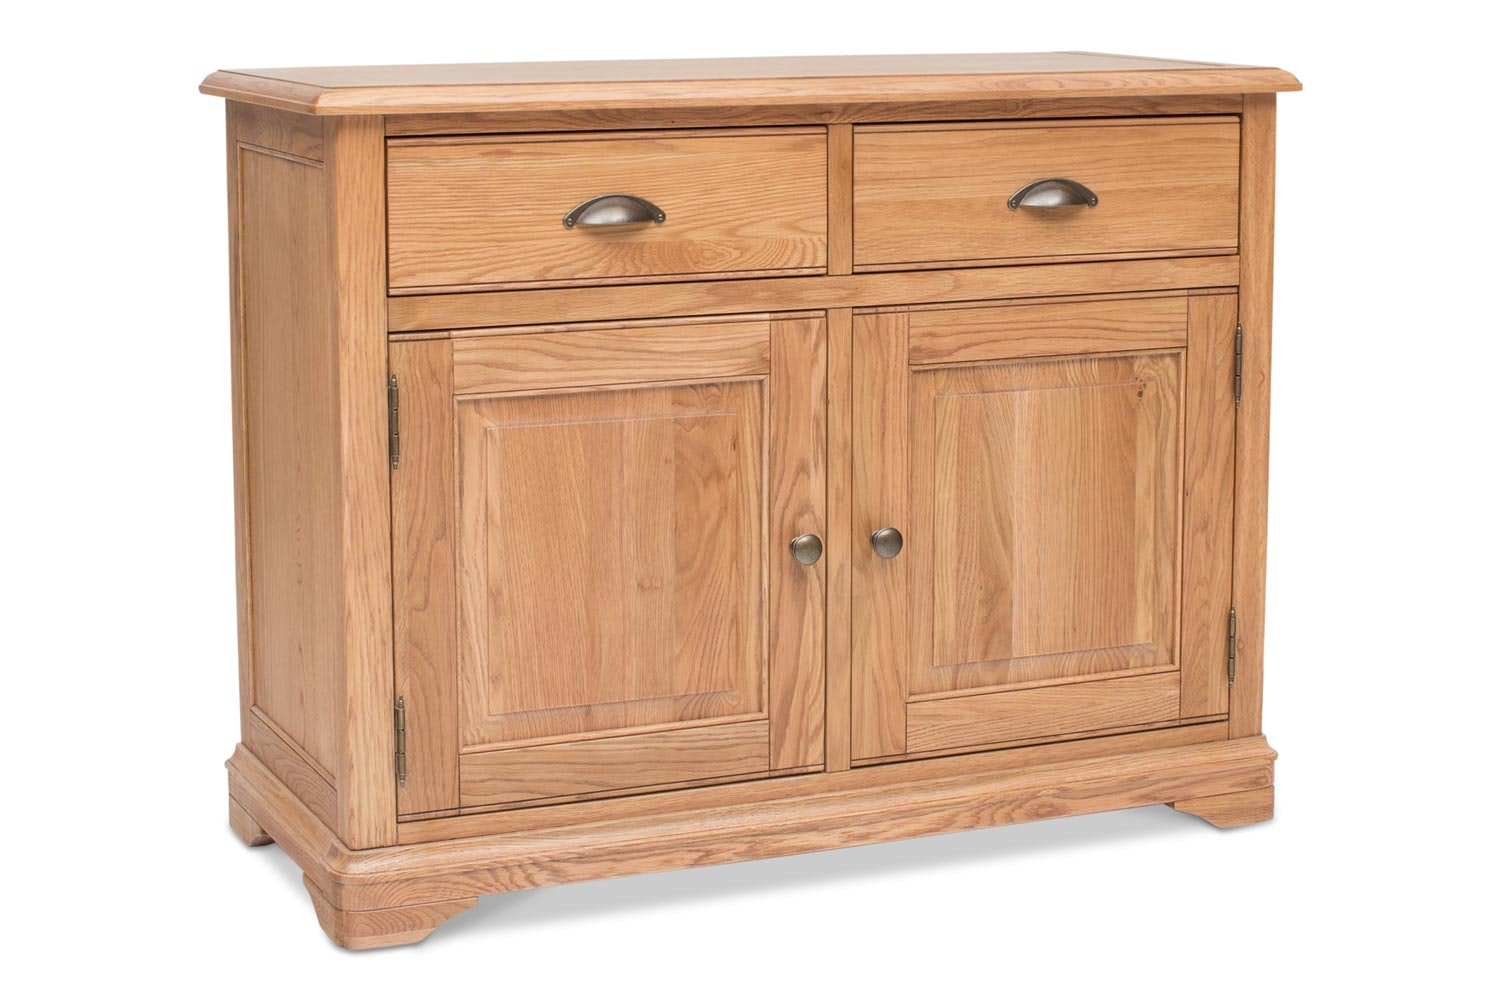 Prunella Small Sideboard